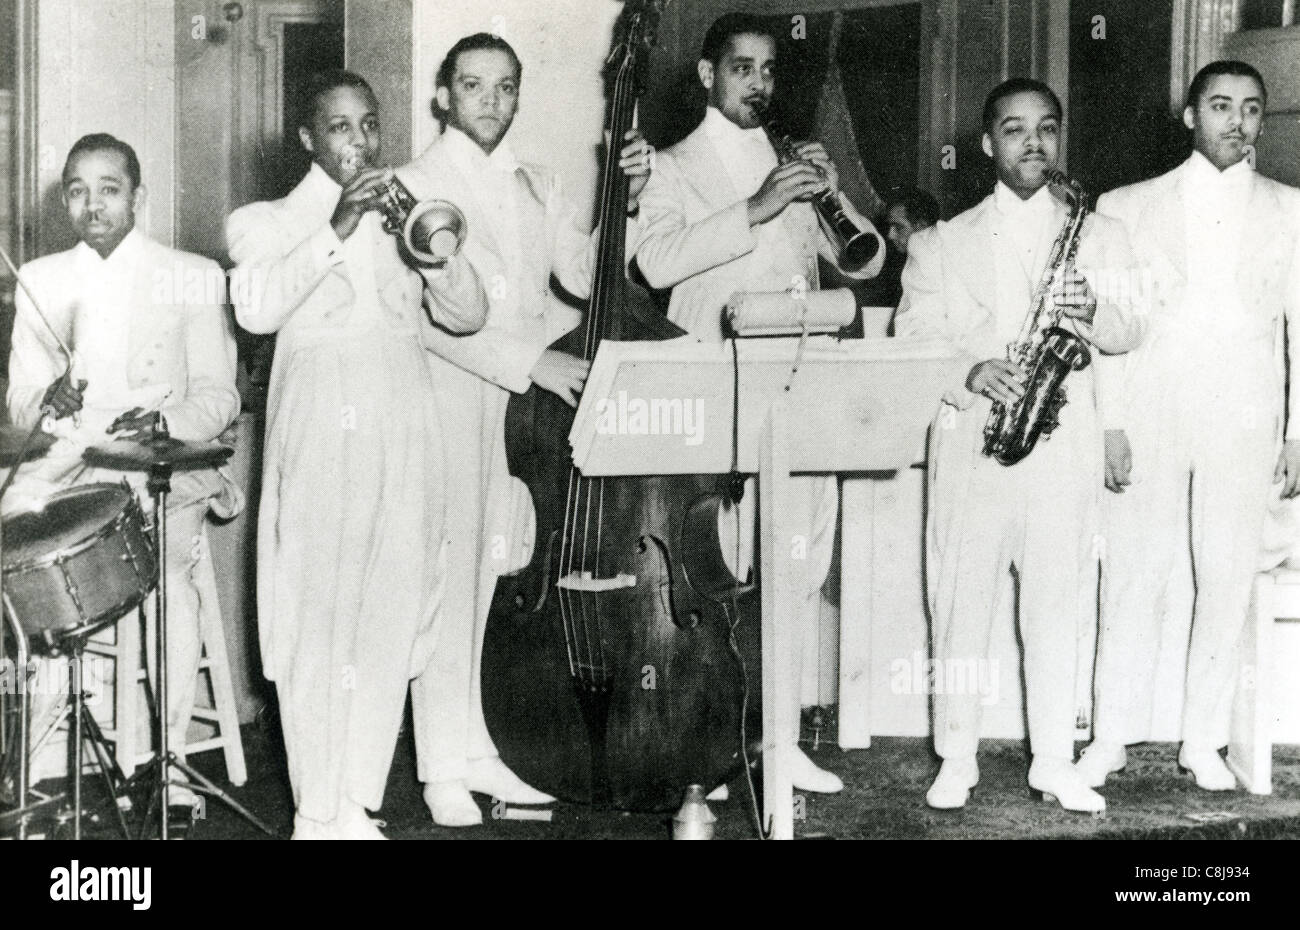 JOHN KIRBY SEXETTE about 1940 from left:O'Neil Spencer, Charlie Shavers, John Kirby, Buster Bailey, Russell - Stock Image